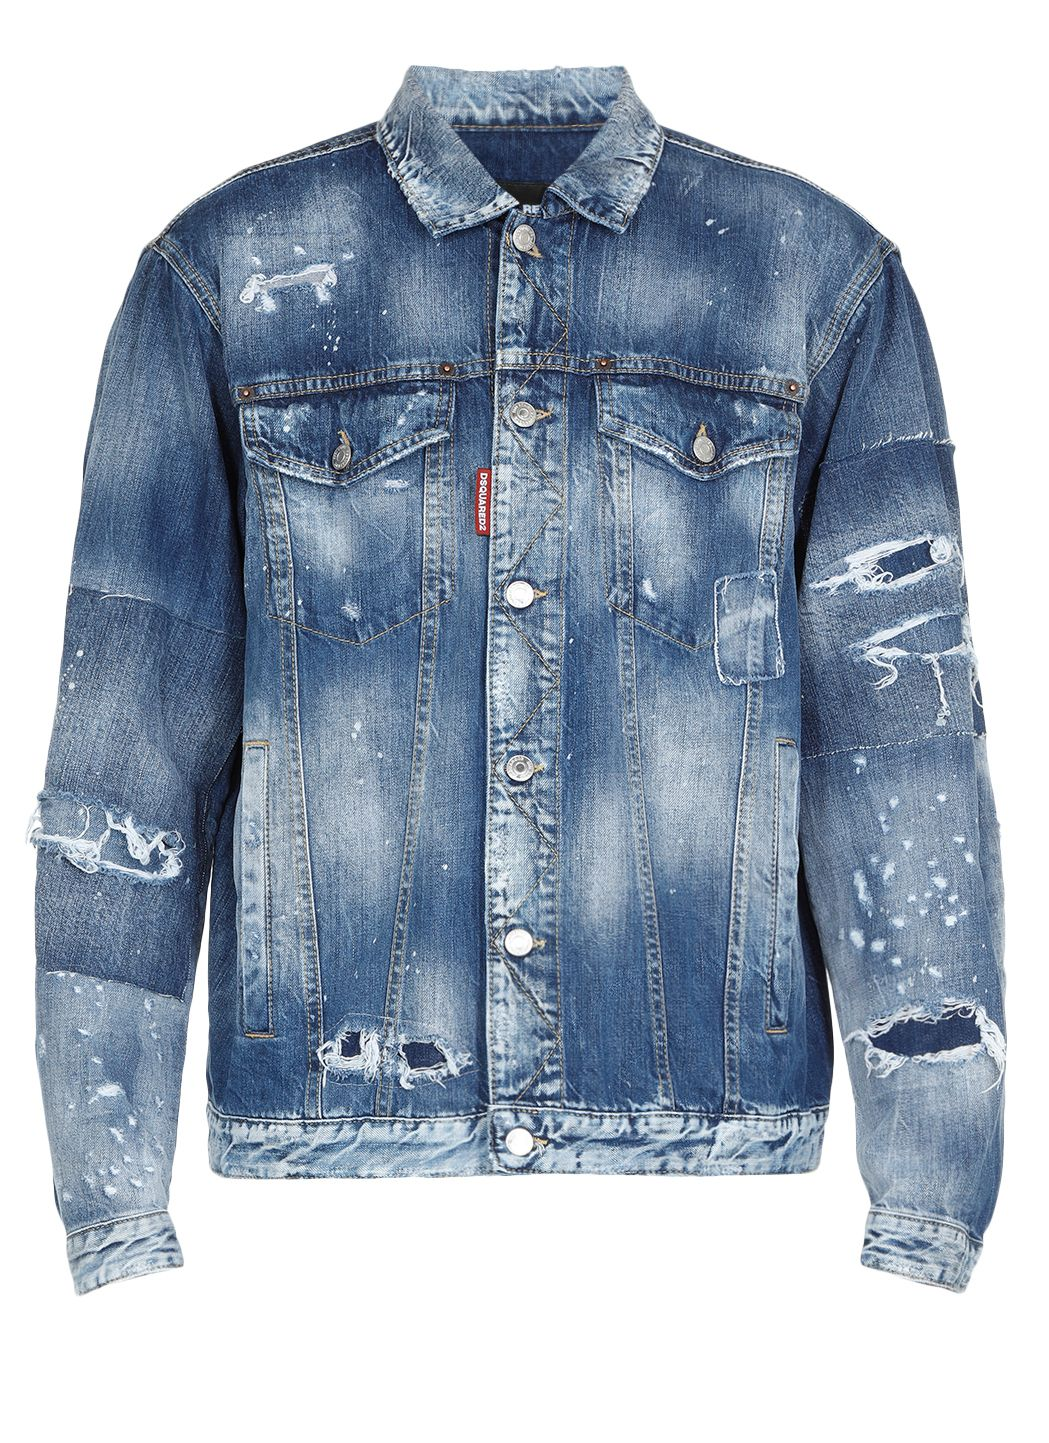 Over Jeans jacket